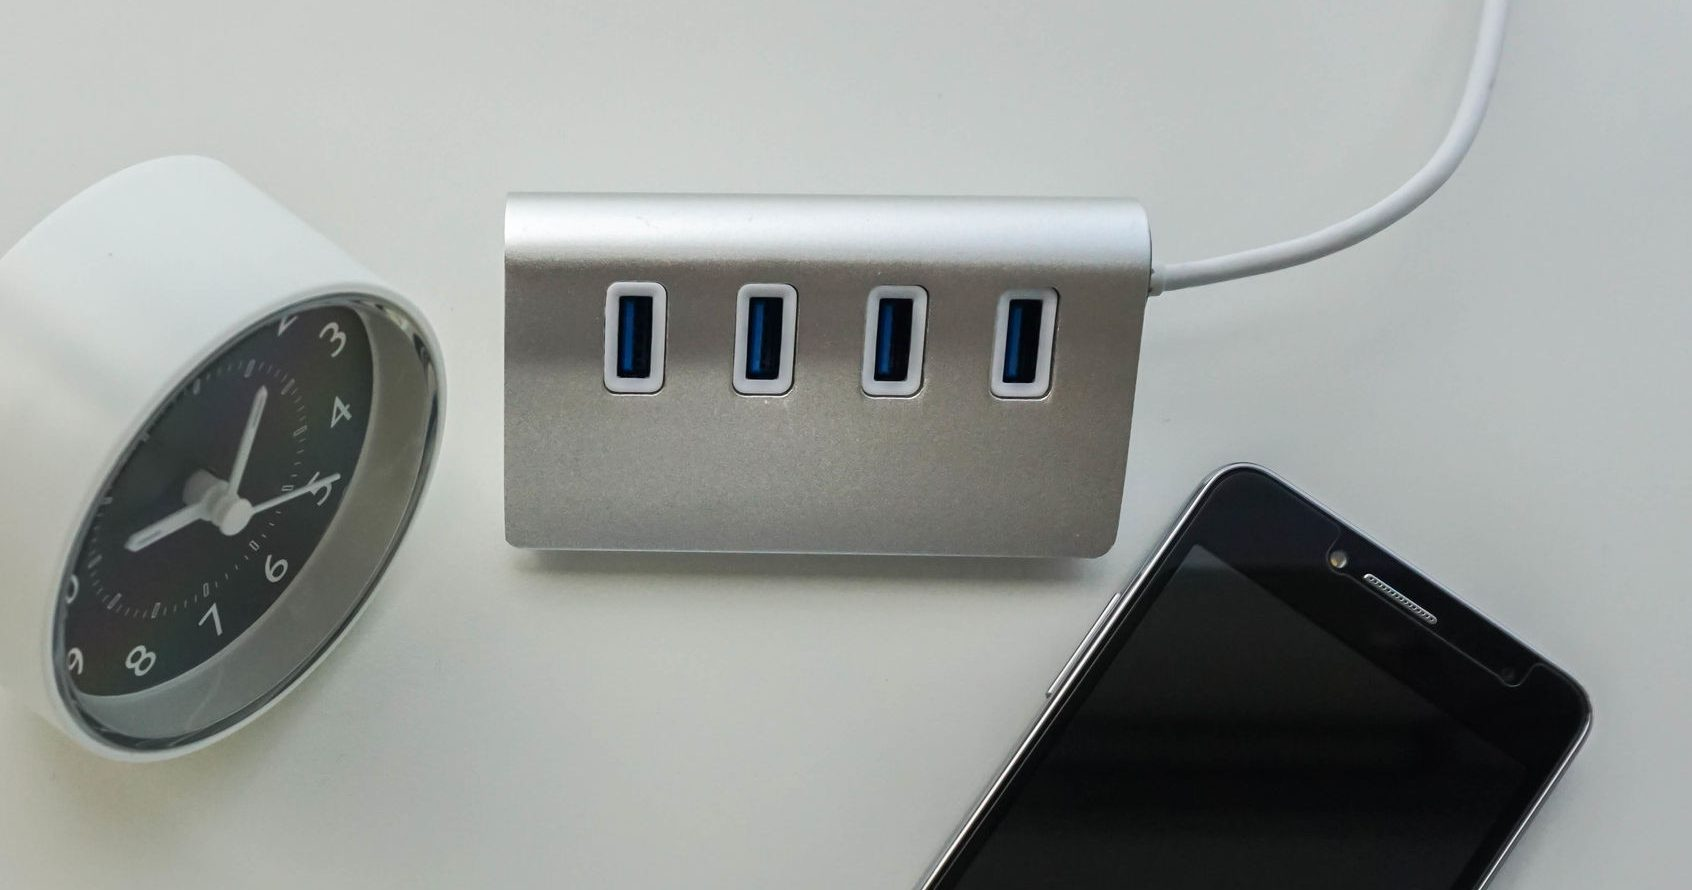 Best USB Charging Station 2020: Shopping Guide & Review